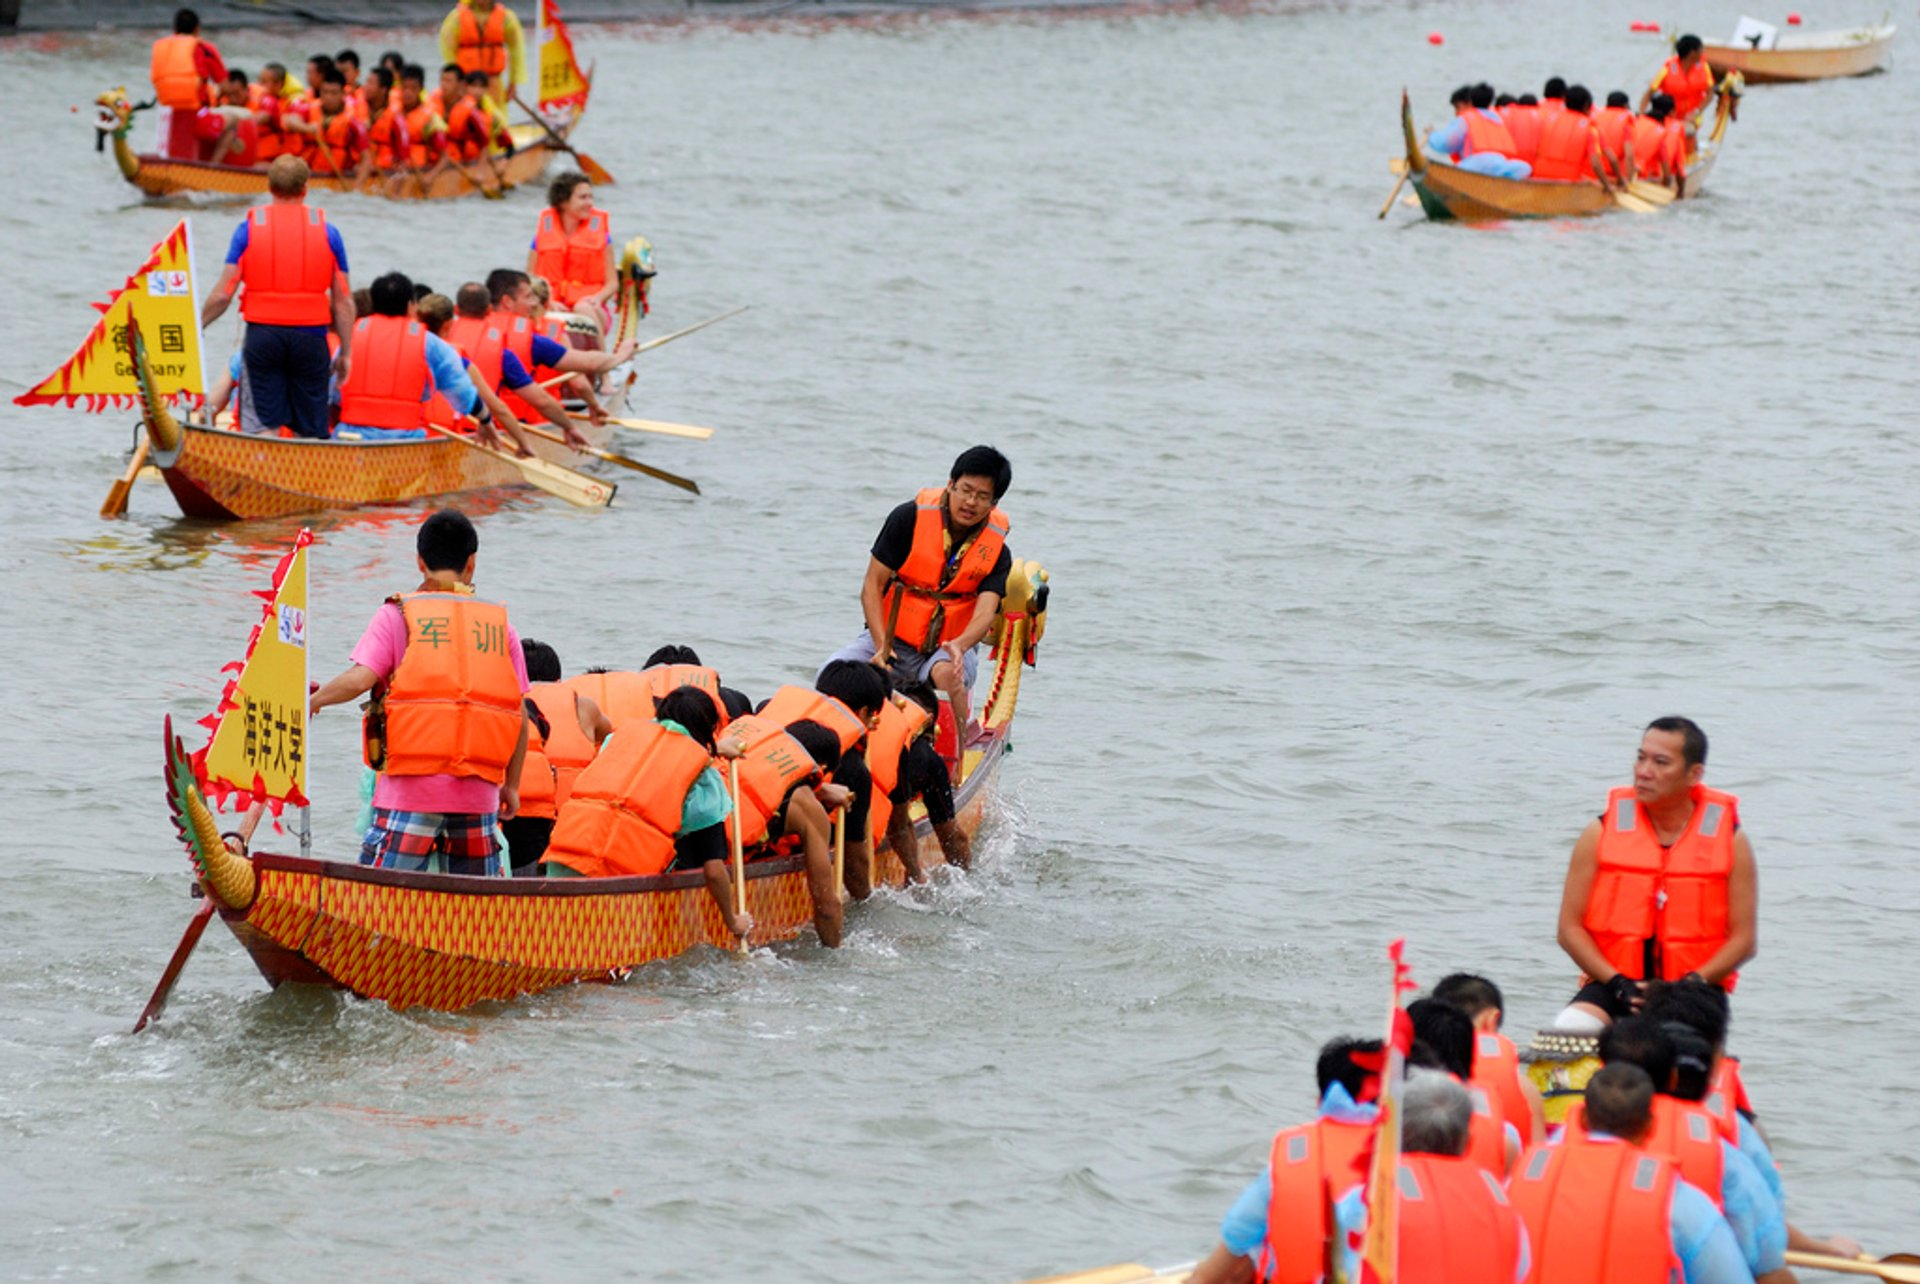 Best time to see Dragon Boat Festival in Shanghai 2020